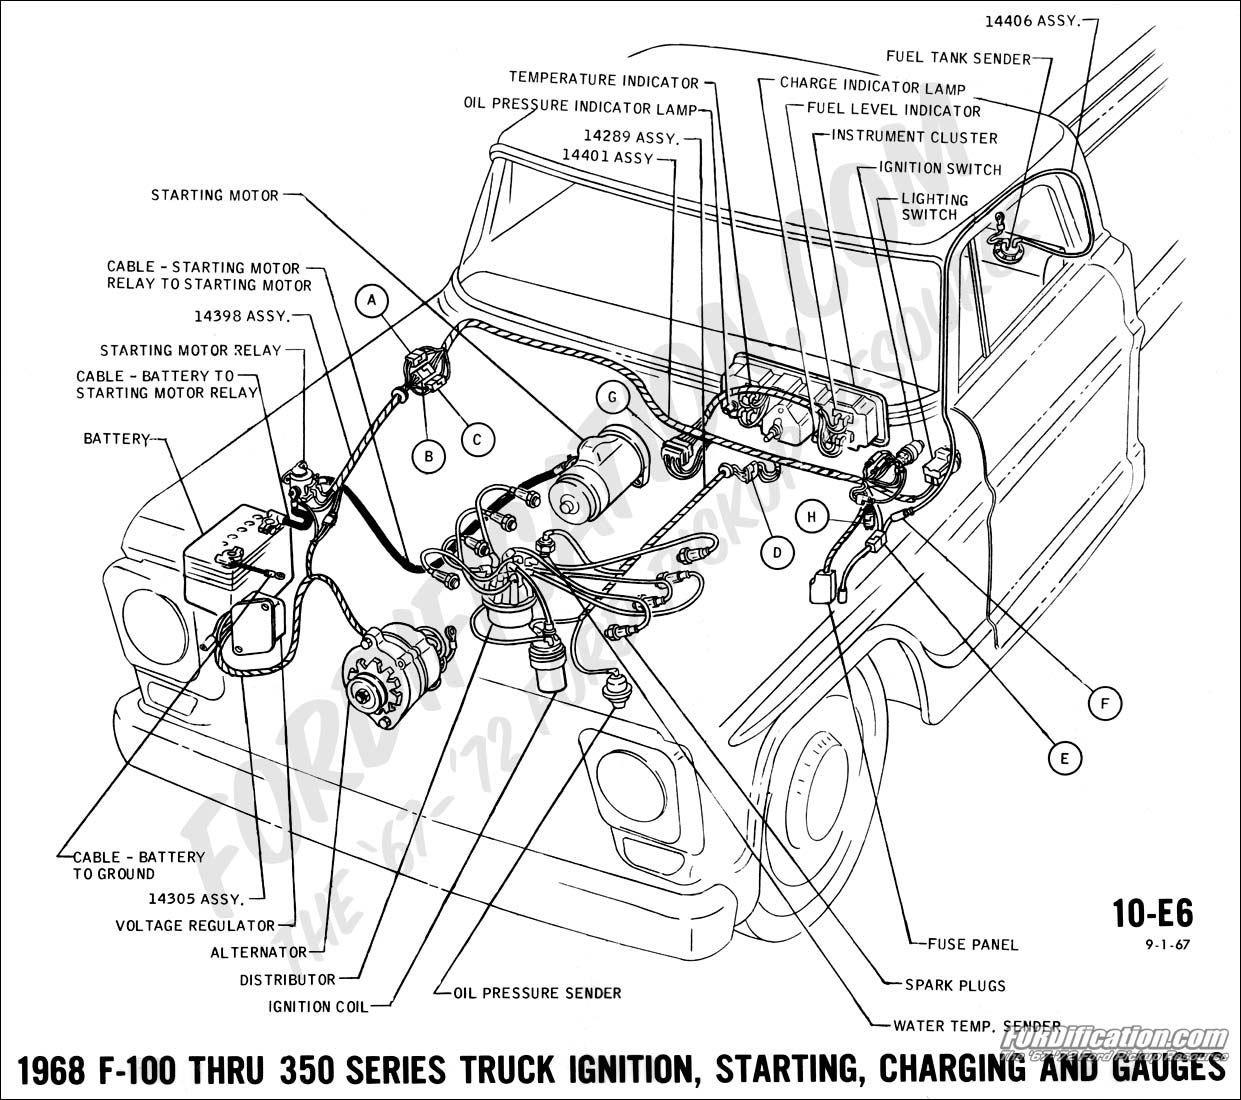 68 ford f100 wiring diagram  68  free engine image for